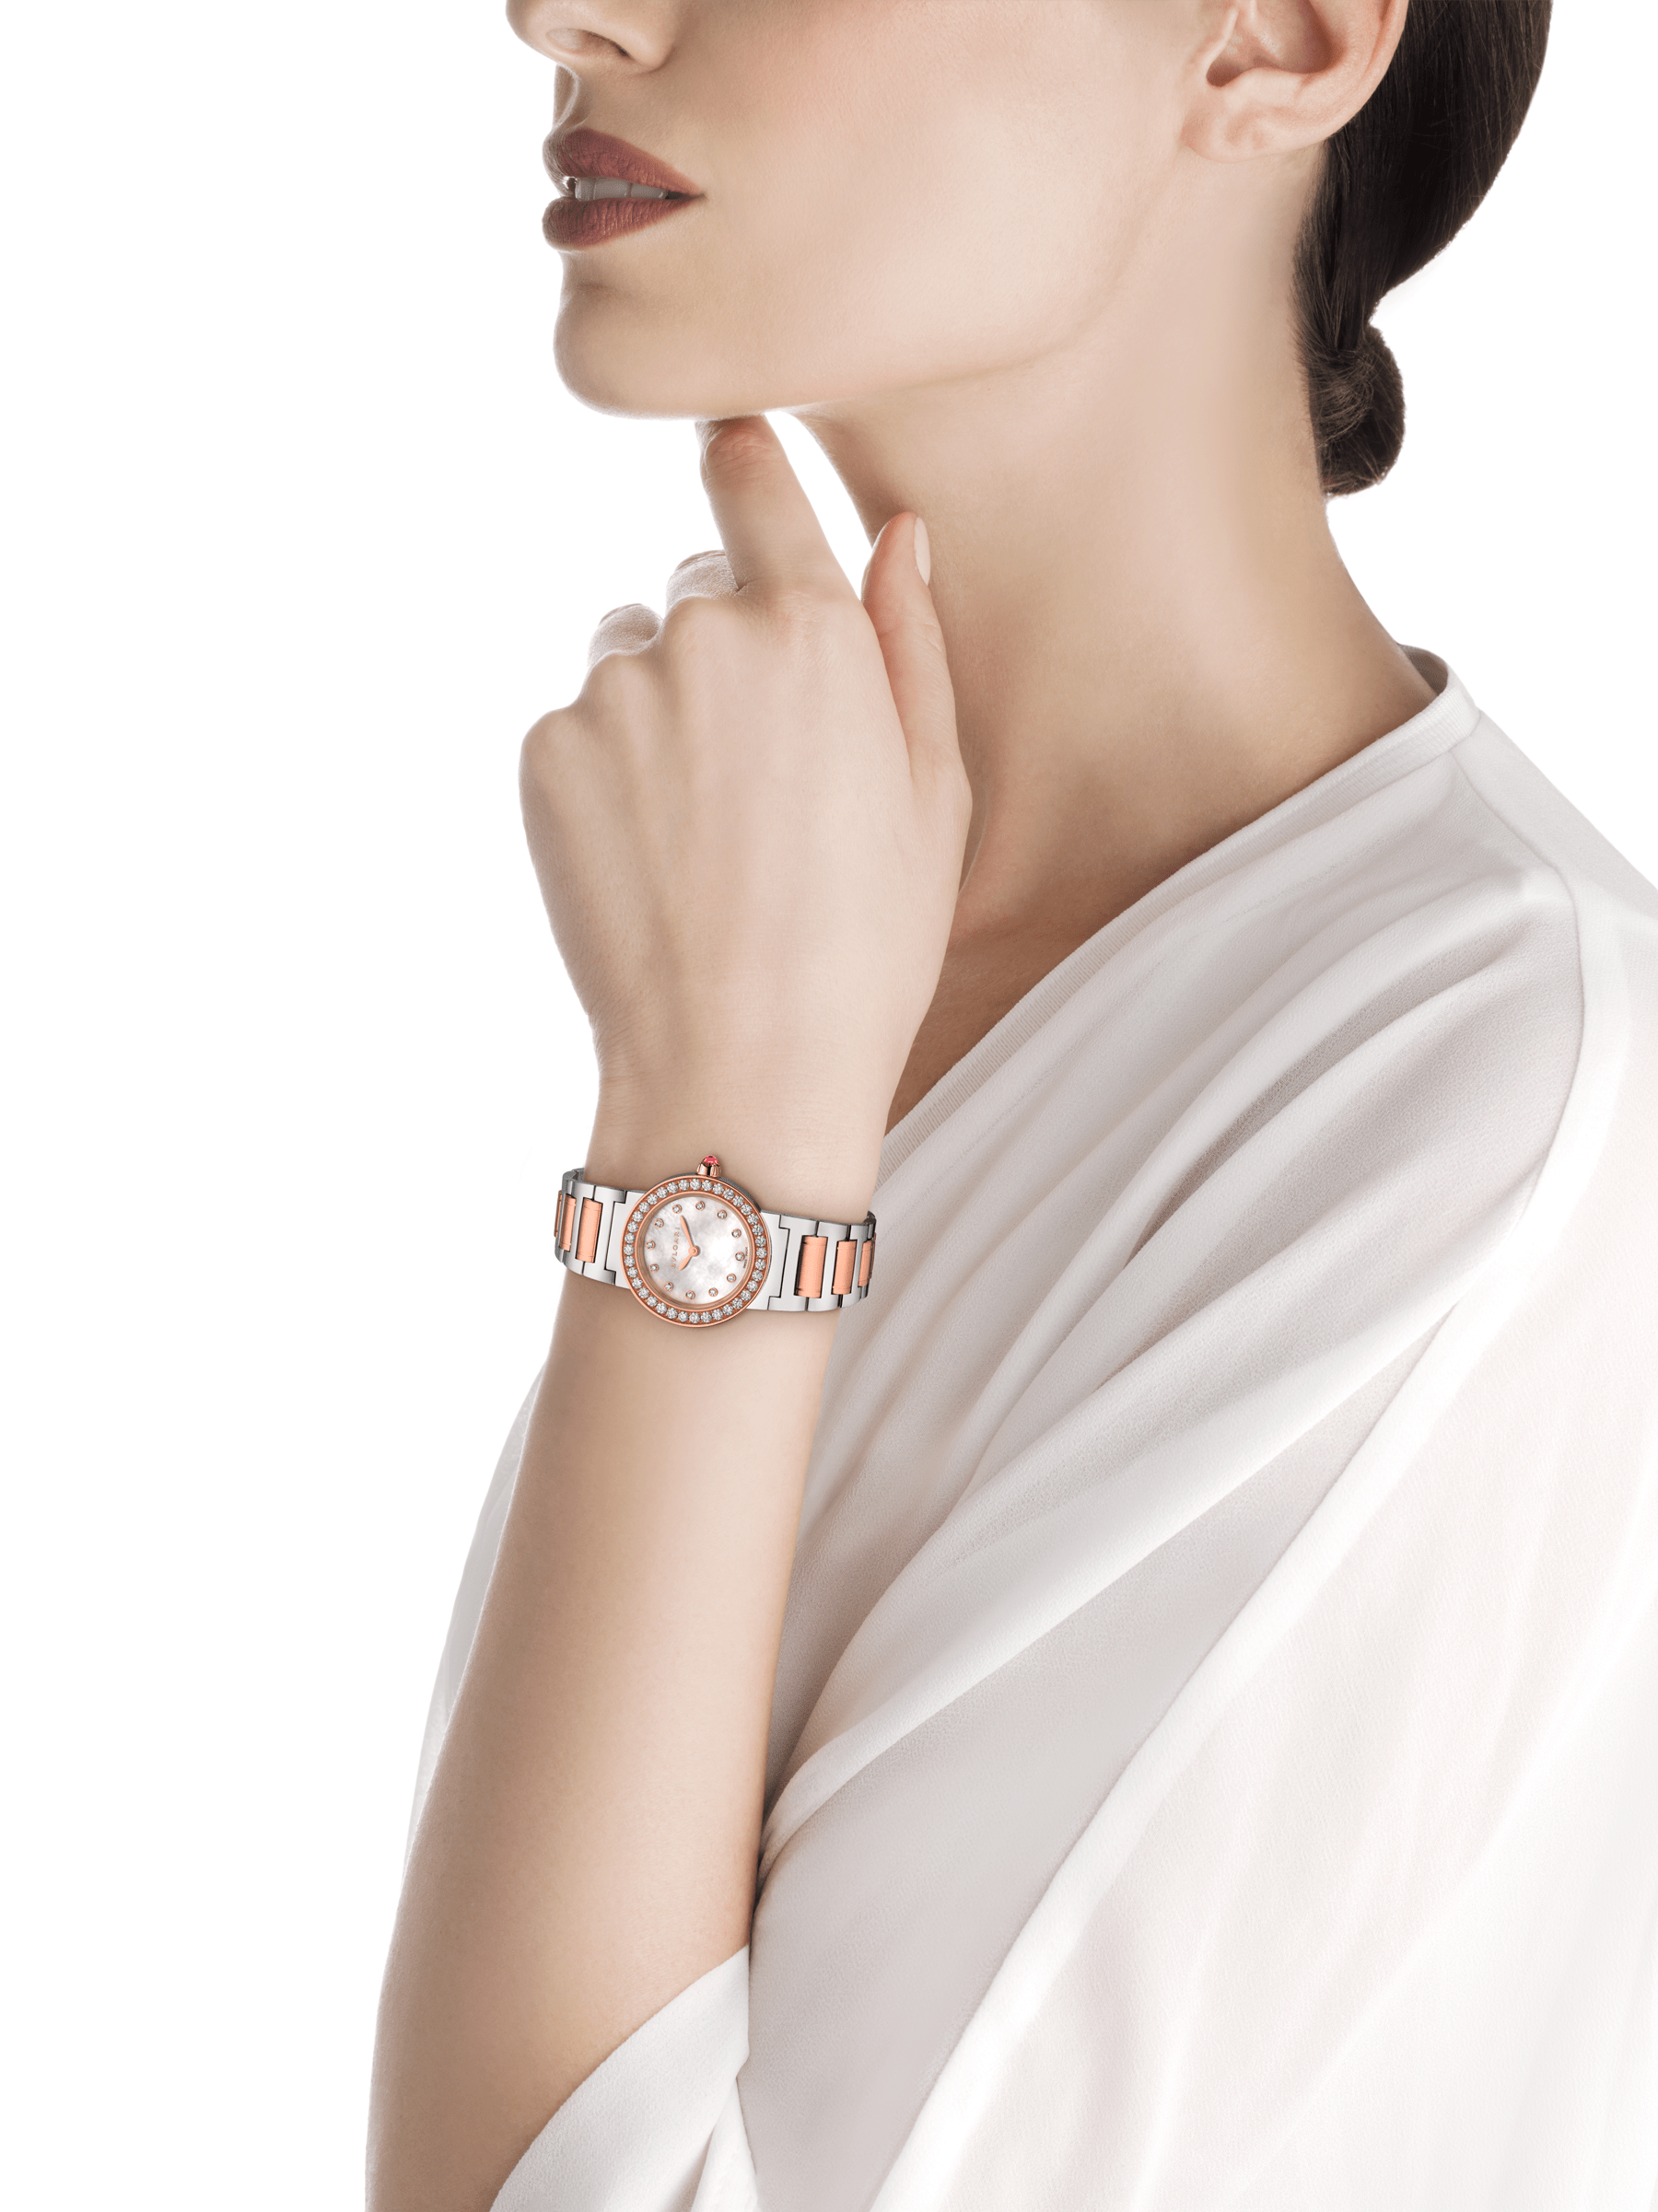 The BVLGARI BVLGARI watch has a stainless steel case, 18 kt rose gold bezel set with diamonds, white mother-of-pearl dial set with diamond indices and a stainless steel and 18 kt rose gold bracelet. 102477 image 4